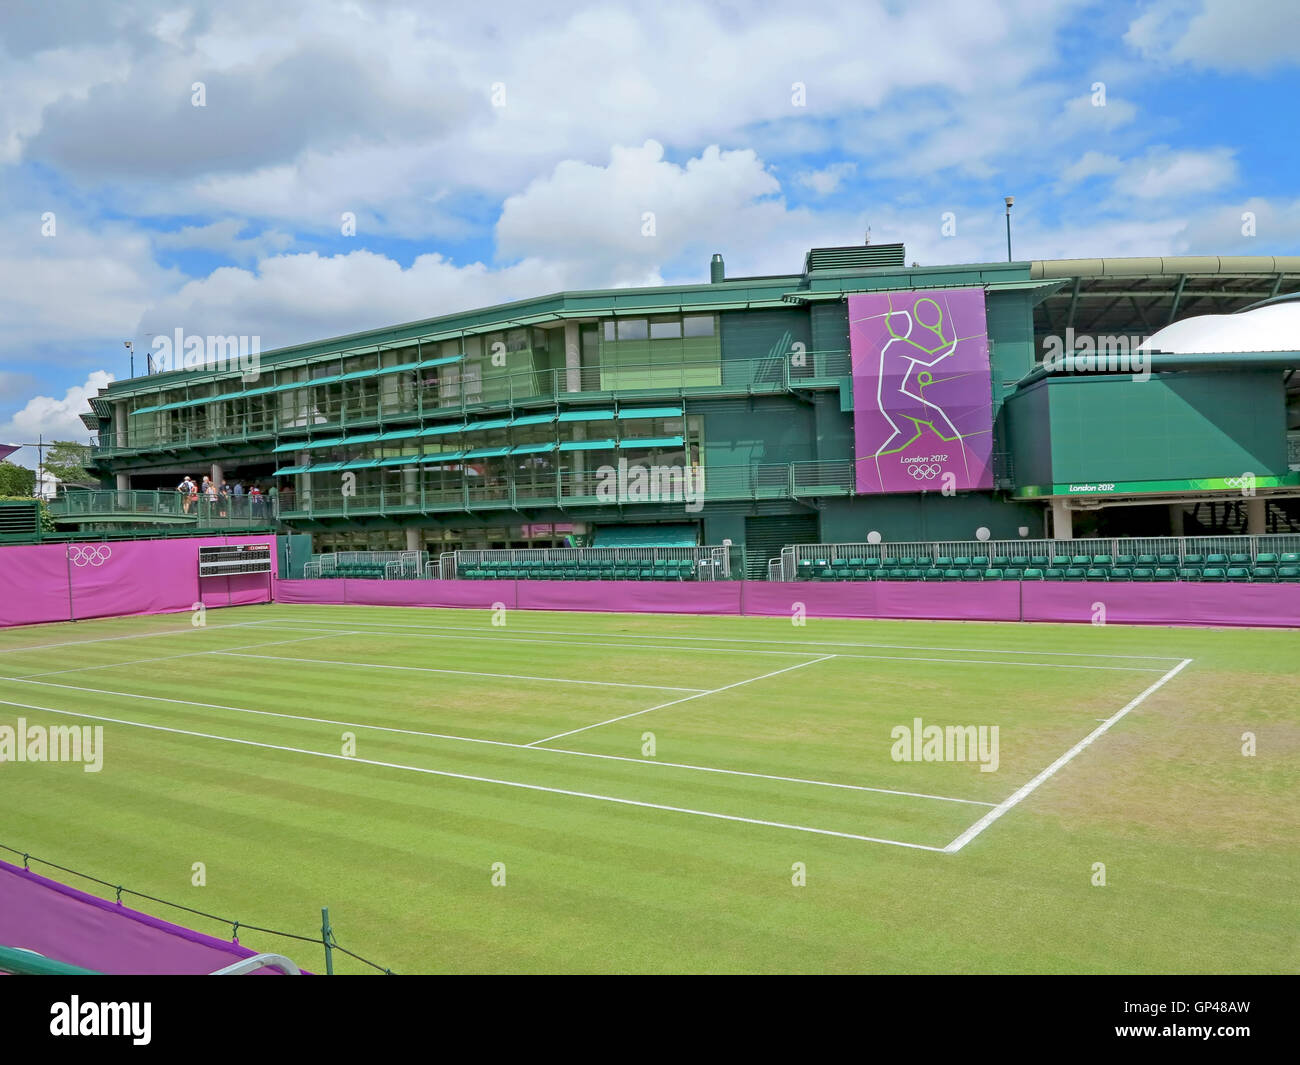 Wimbledon, UK. August 2nd, 2012. One of the tennis courts at Wimbledon during the summer Olympics in London in 2012. - Stock Image